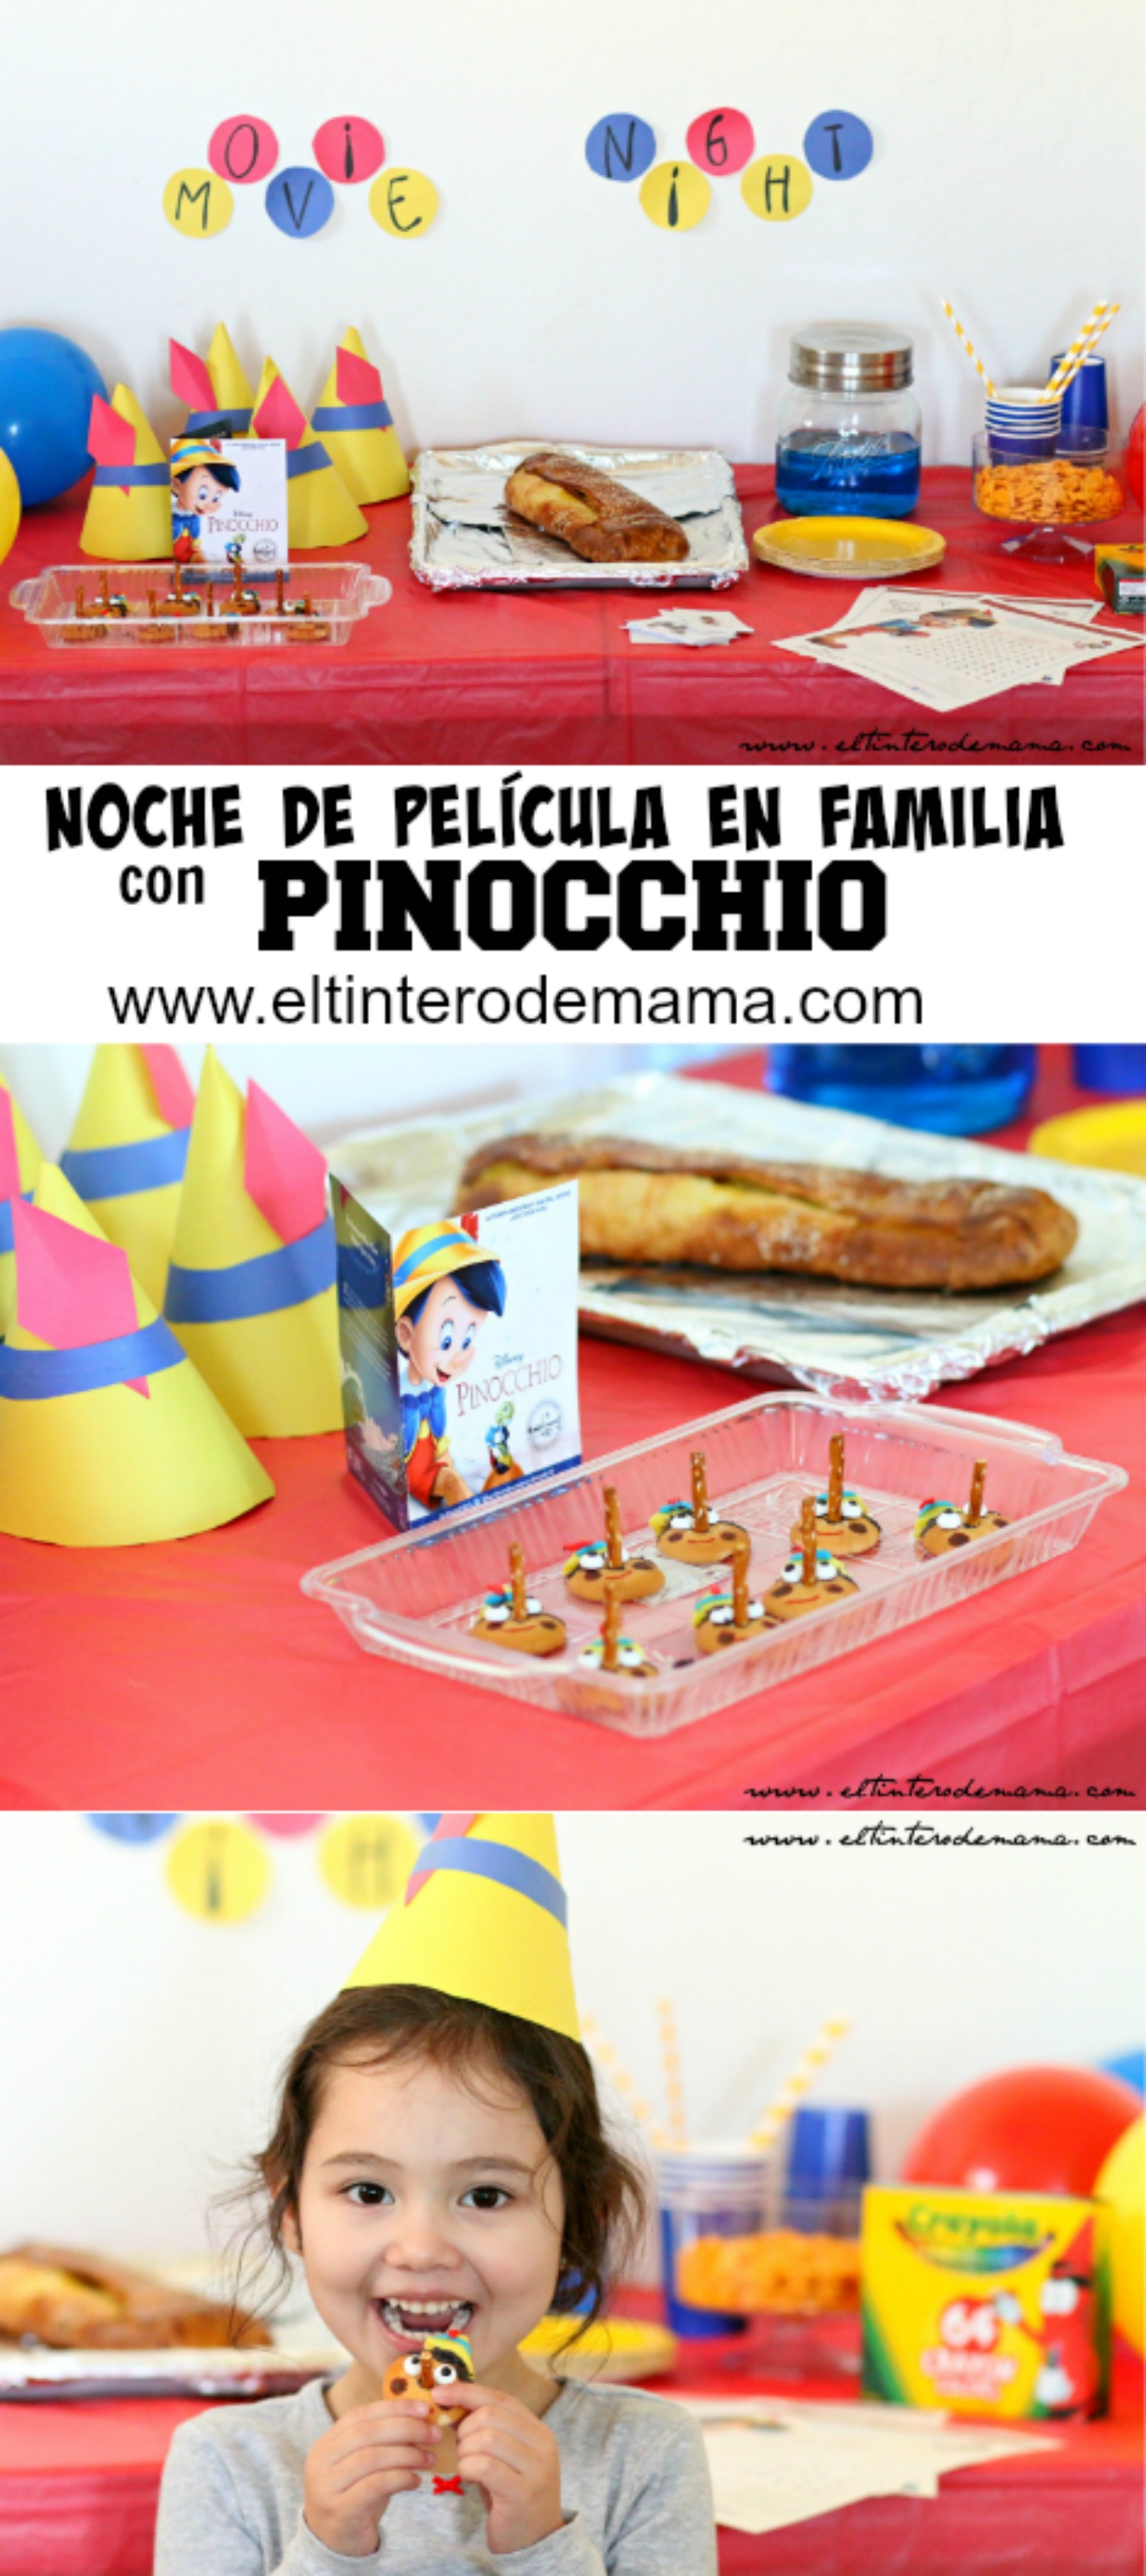 Pinocchio-family-movie-night-giveaway